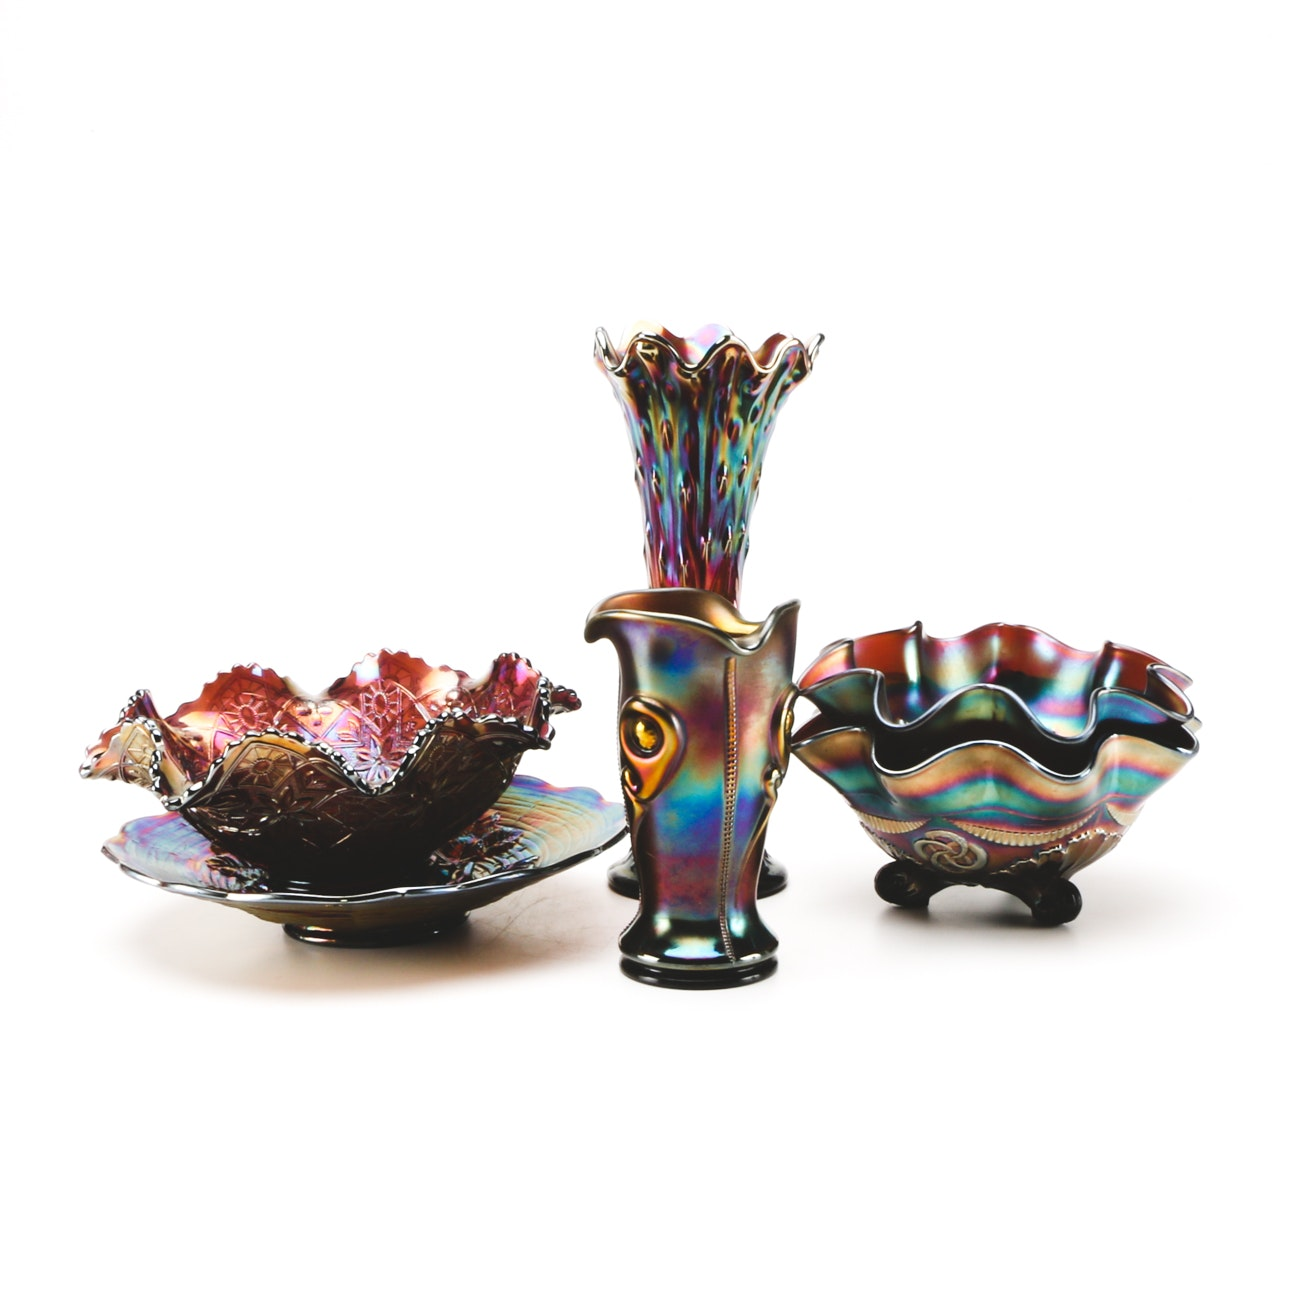 Assortment of Mid-Century Carnival Glass